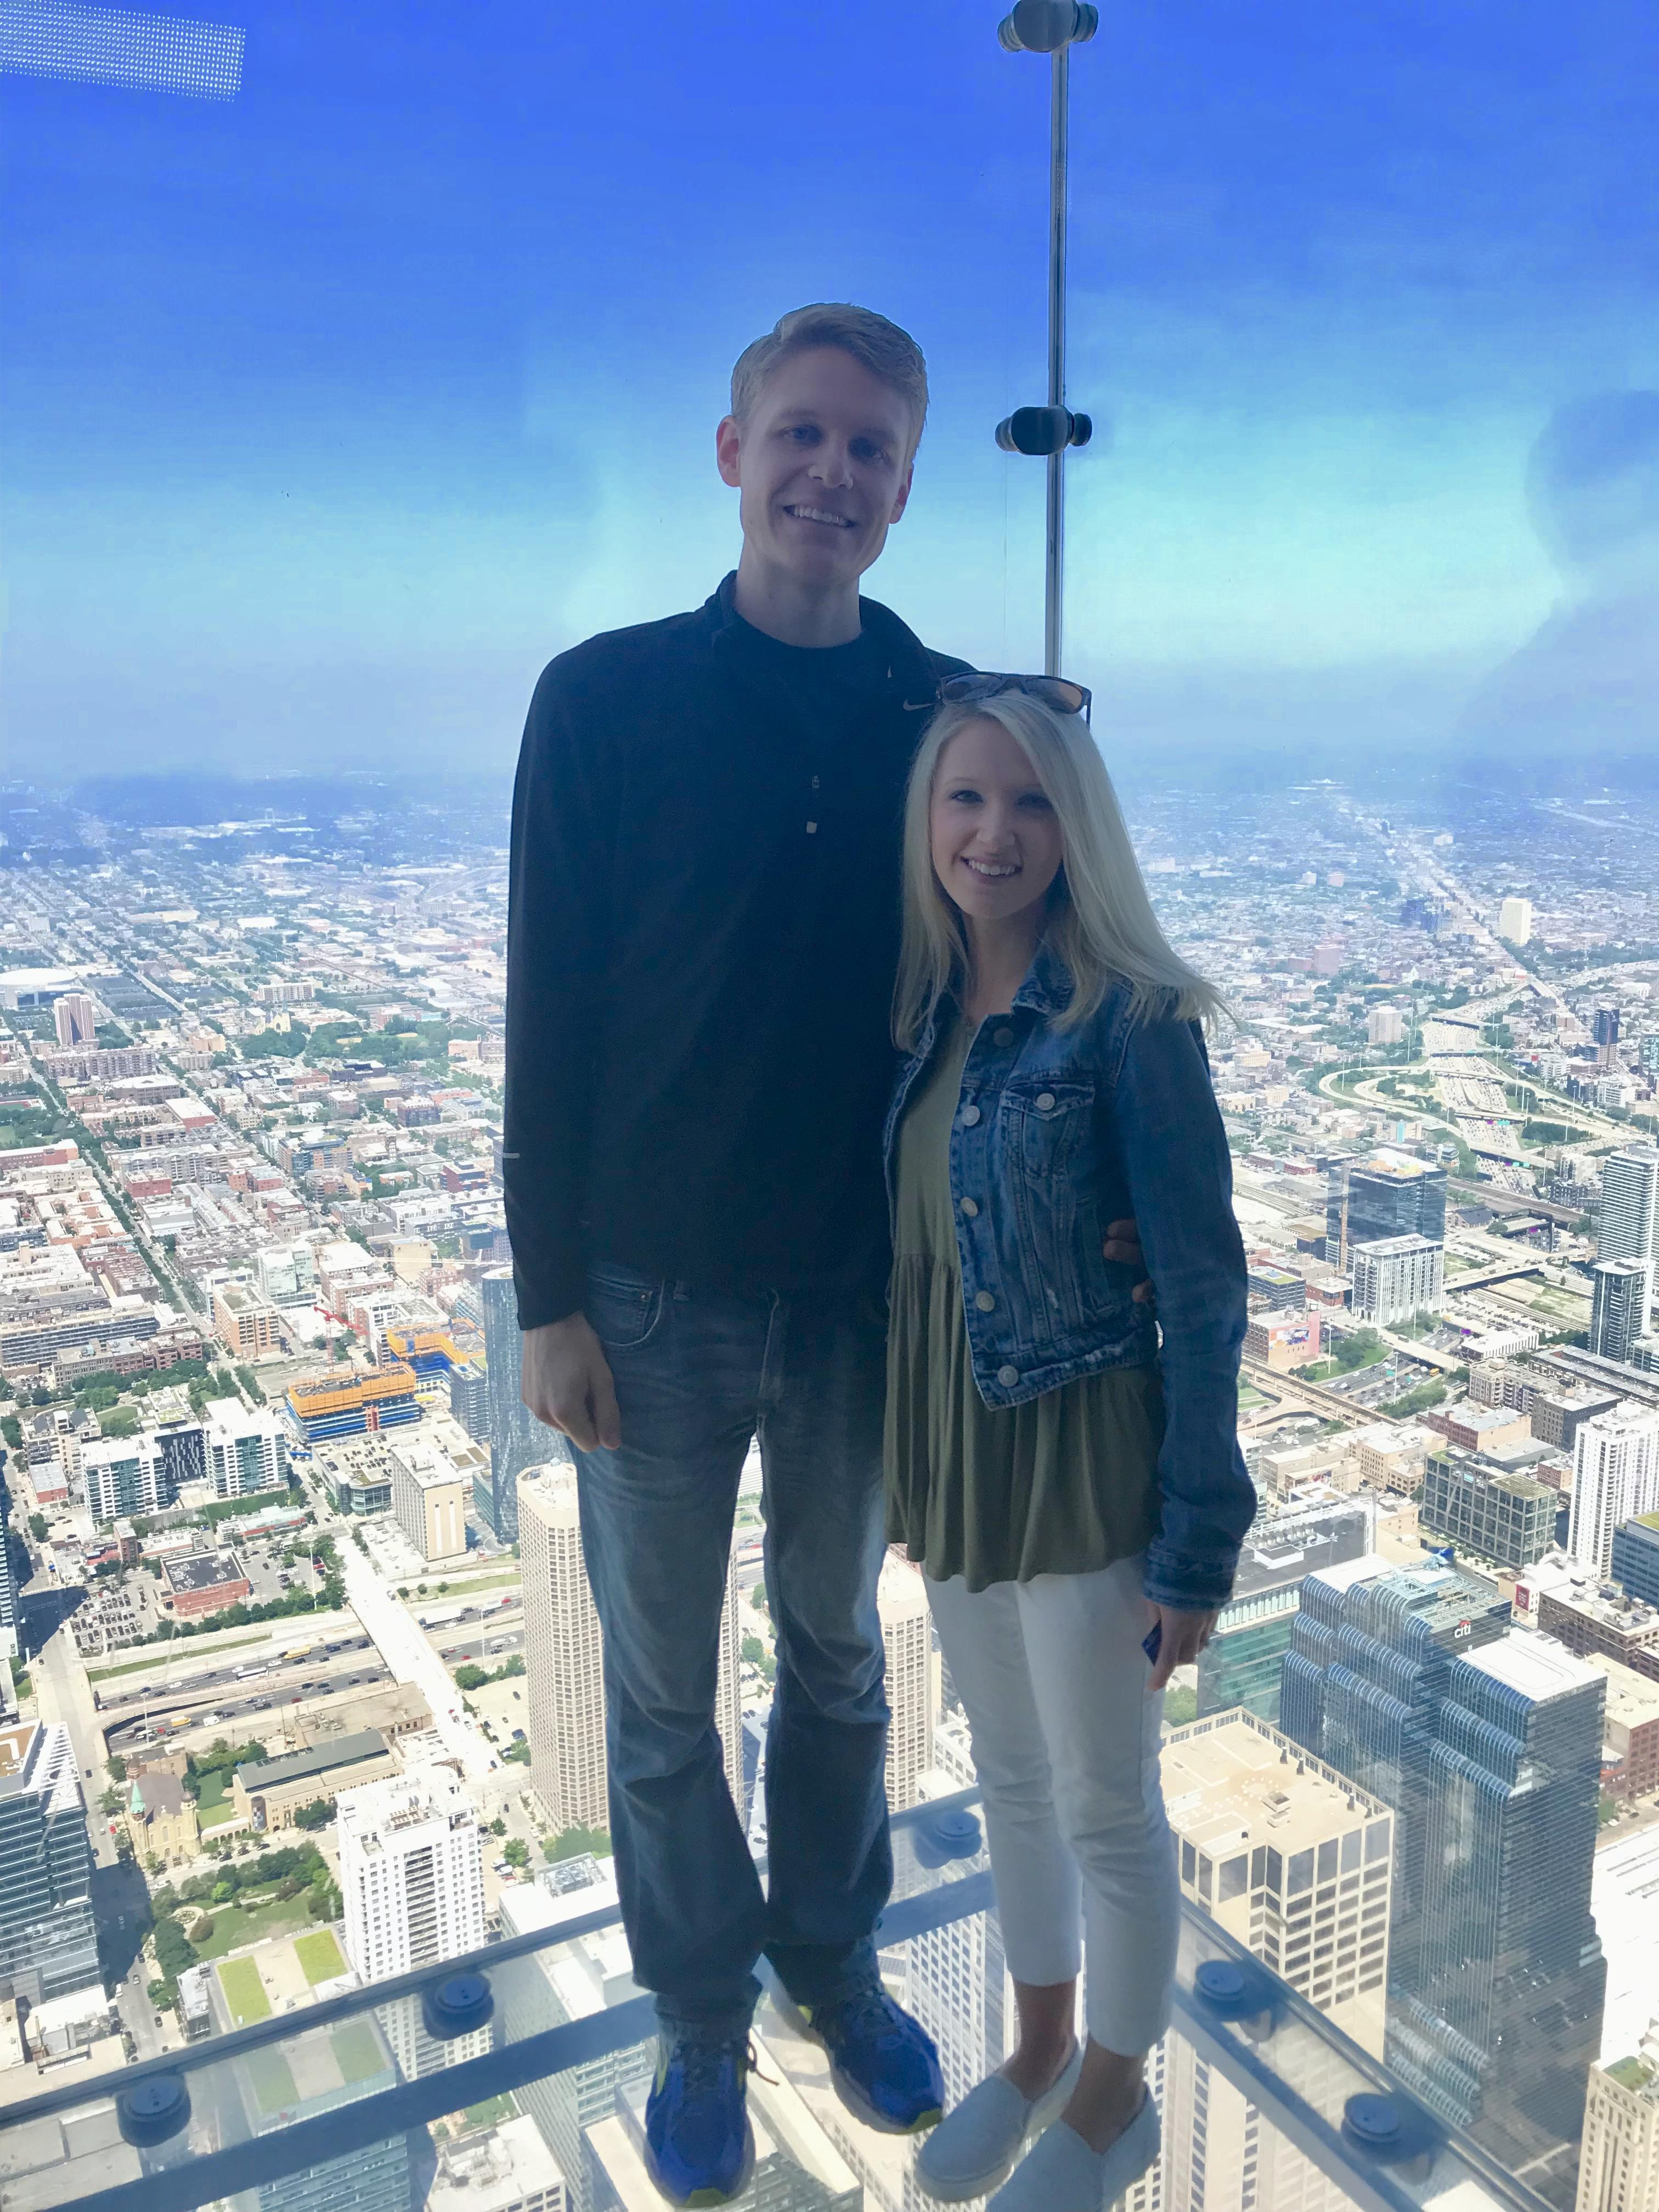 Willis Tower in Chicago 103 stories up!